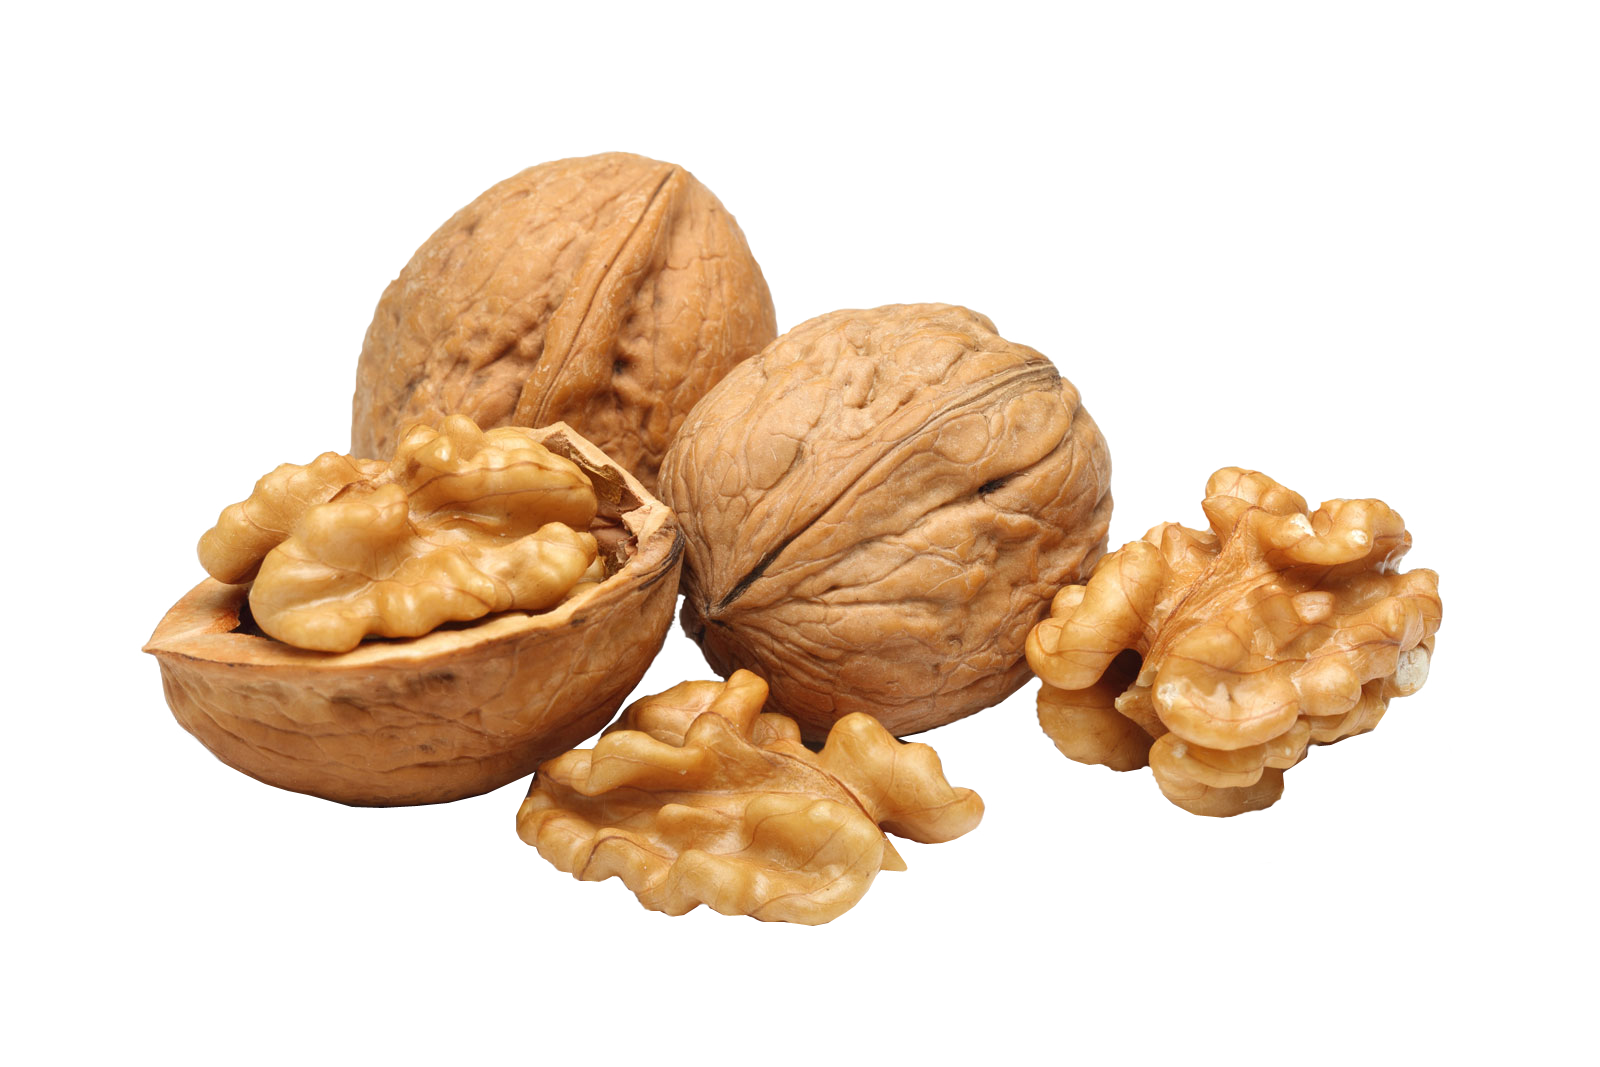 Walnut PNG images free download.